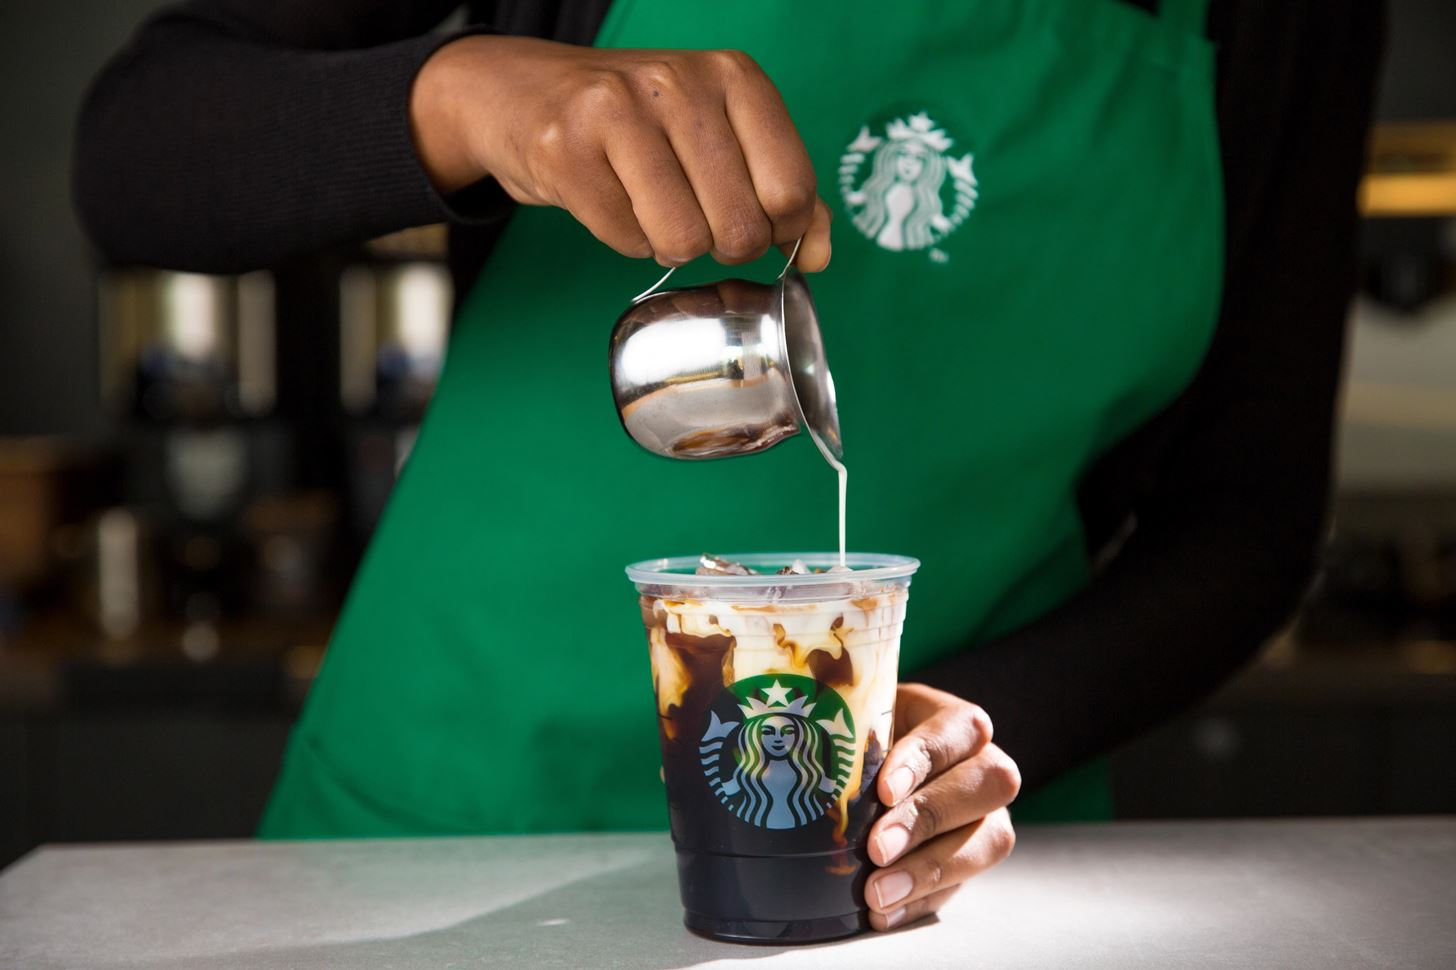 Skip the Line & Make Your Own Starbucks' Vanilla Sweet Cream Cold Brew